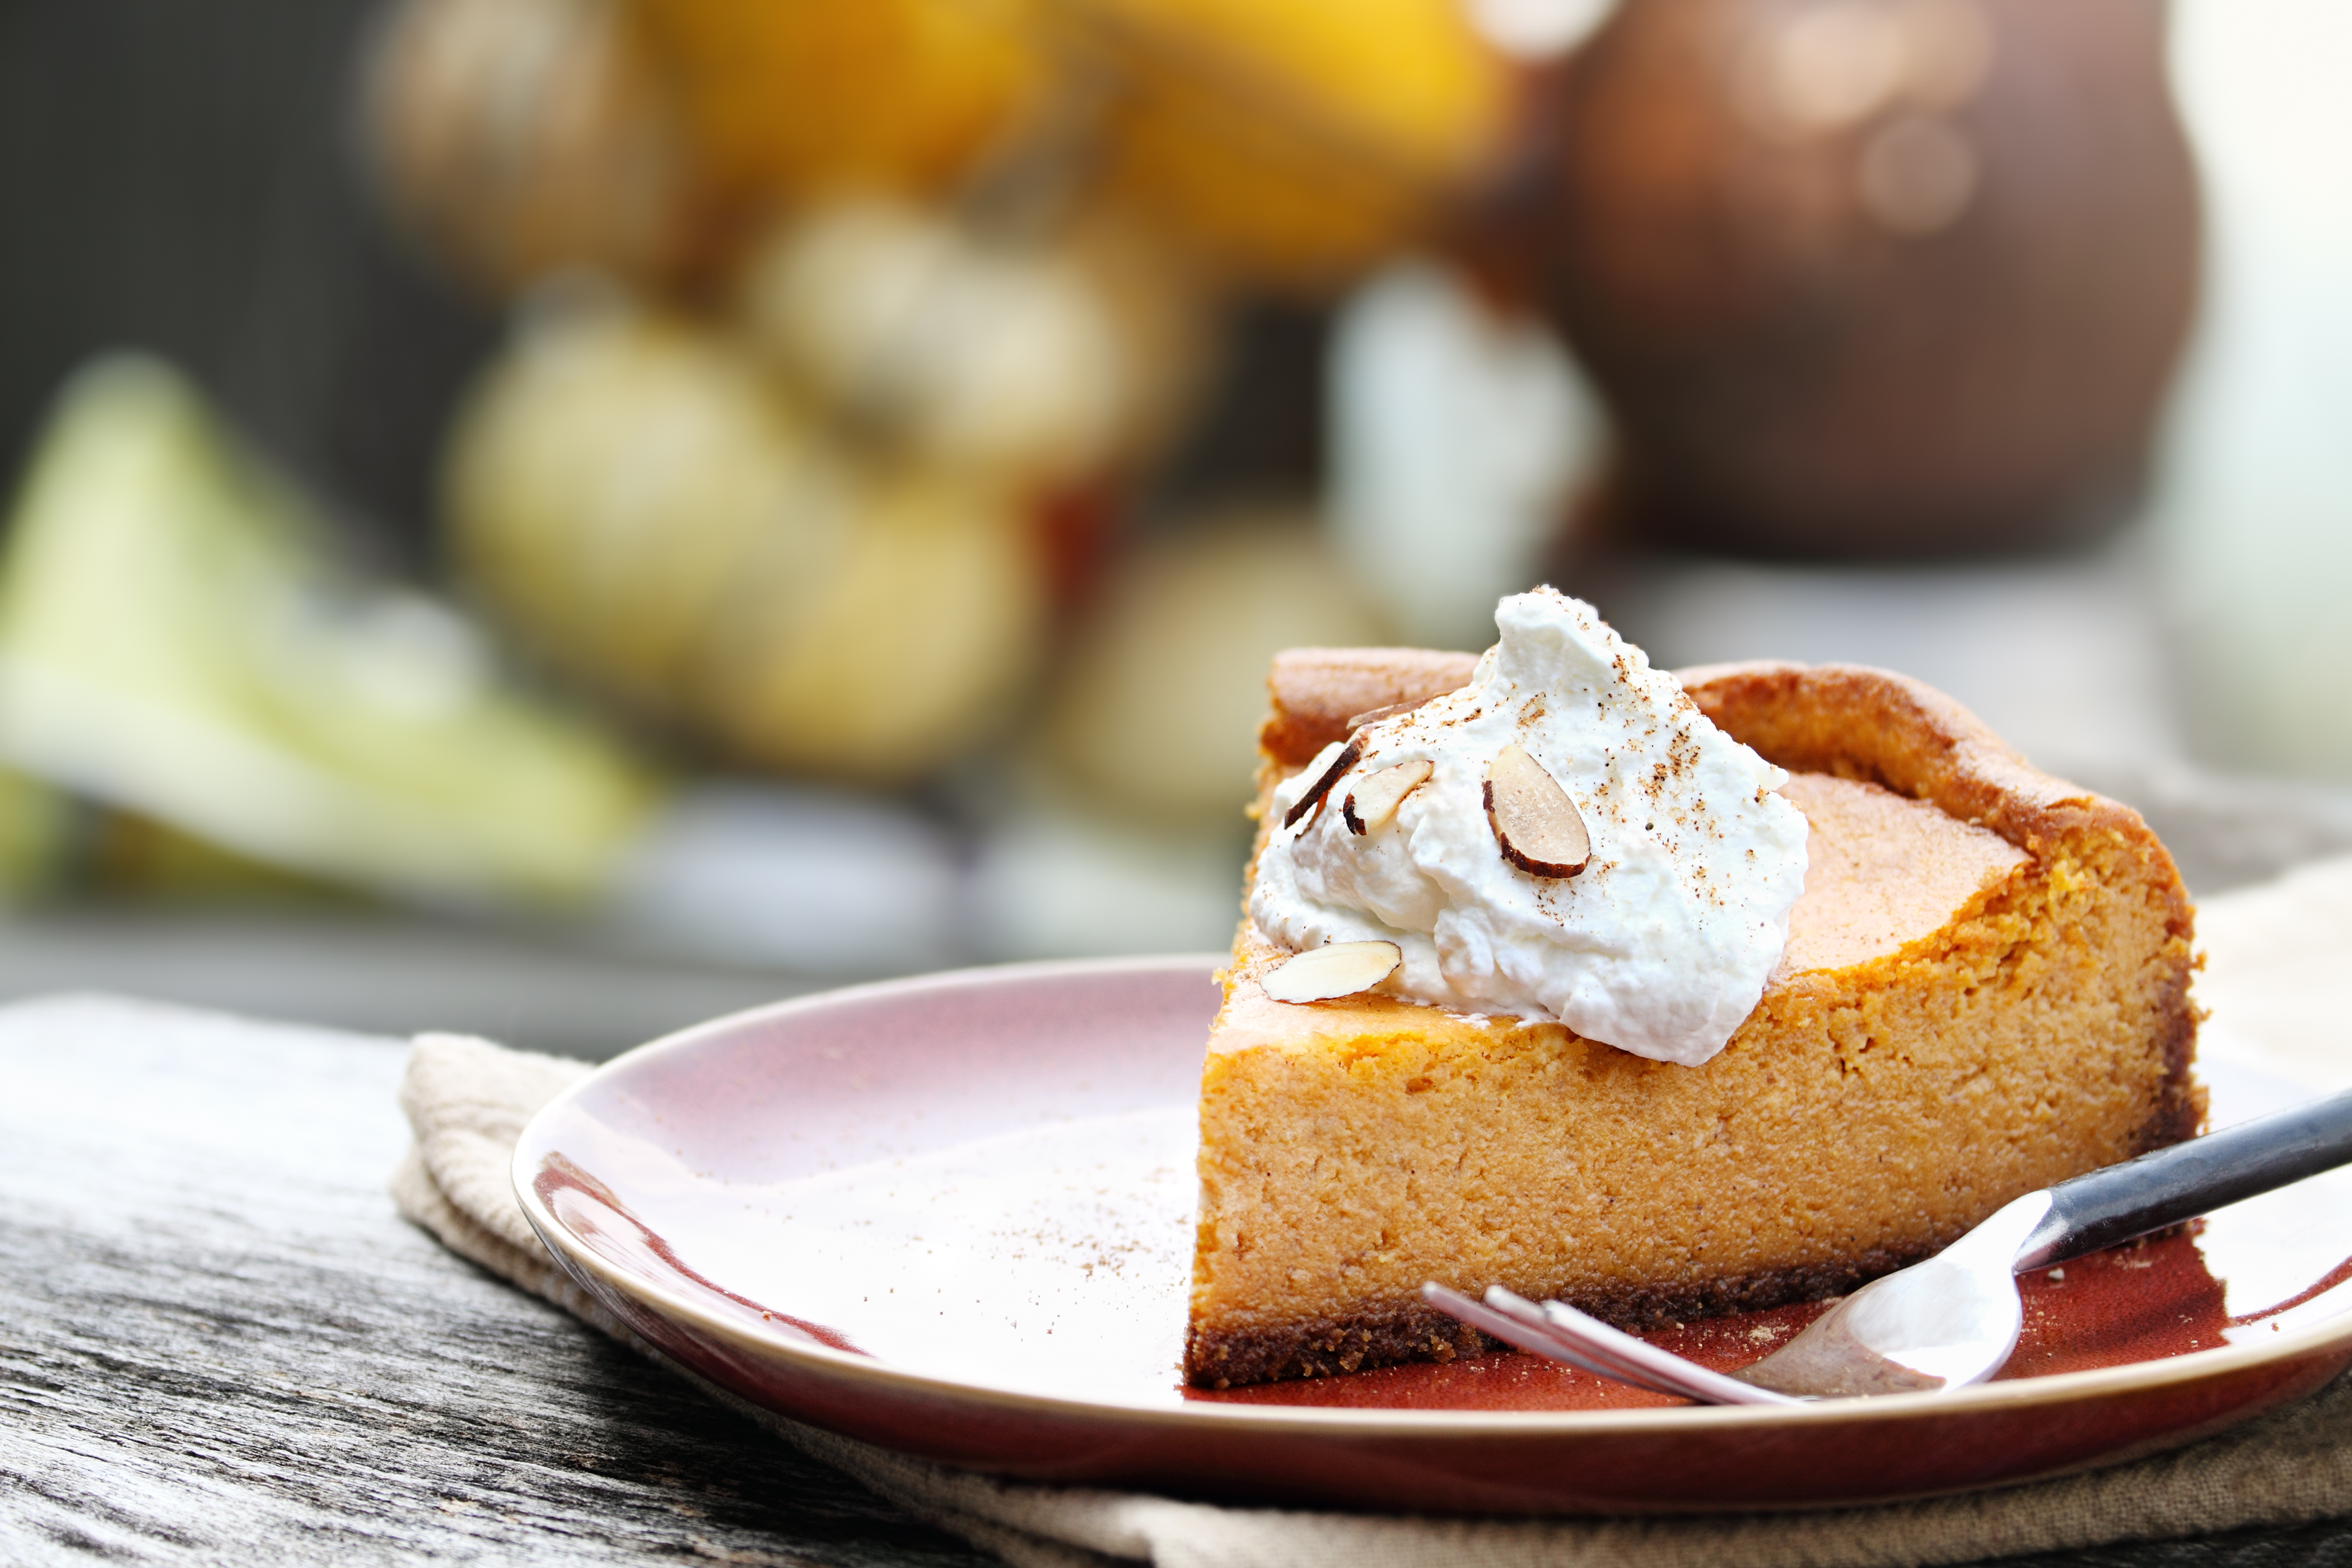 A slice of Pumpkin Cheesecake Pie with homemade whipped cream, almonds and pumpkin spice. Extreme shallow depth of field.